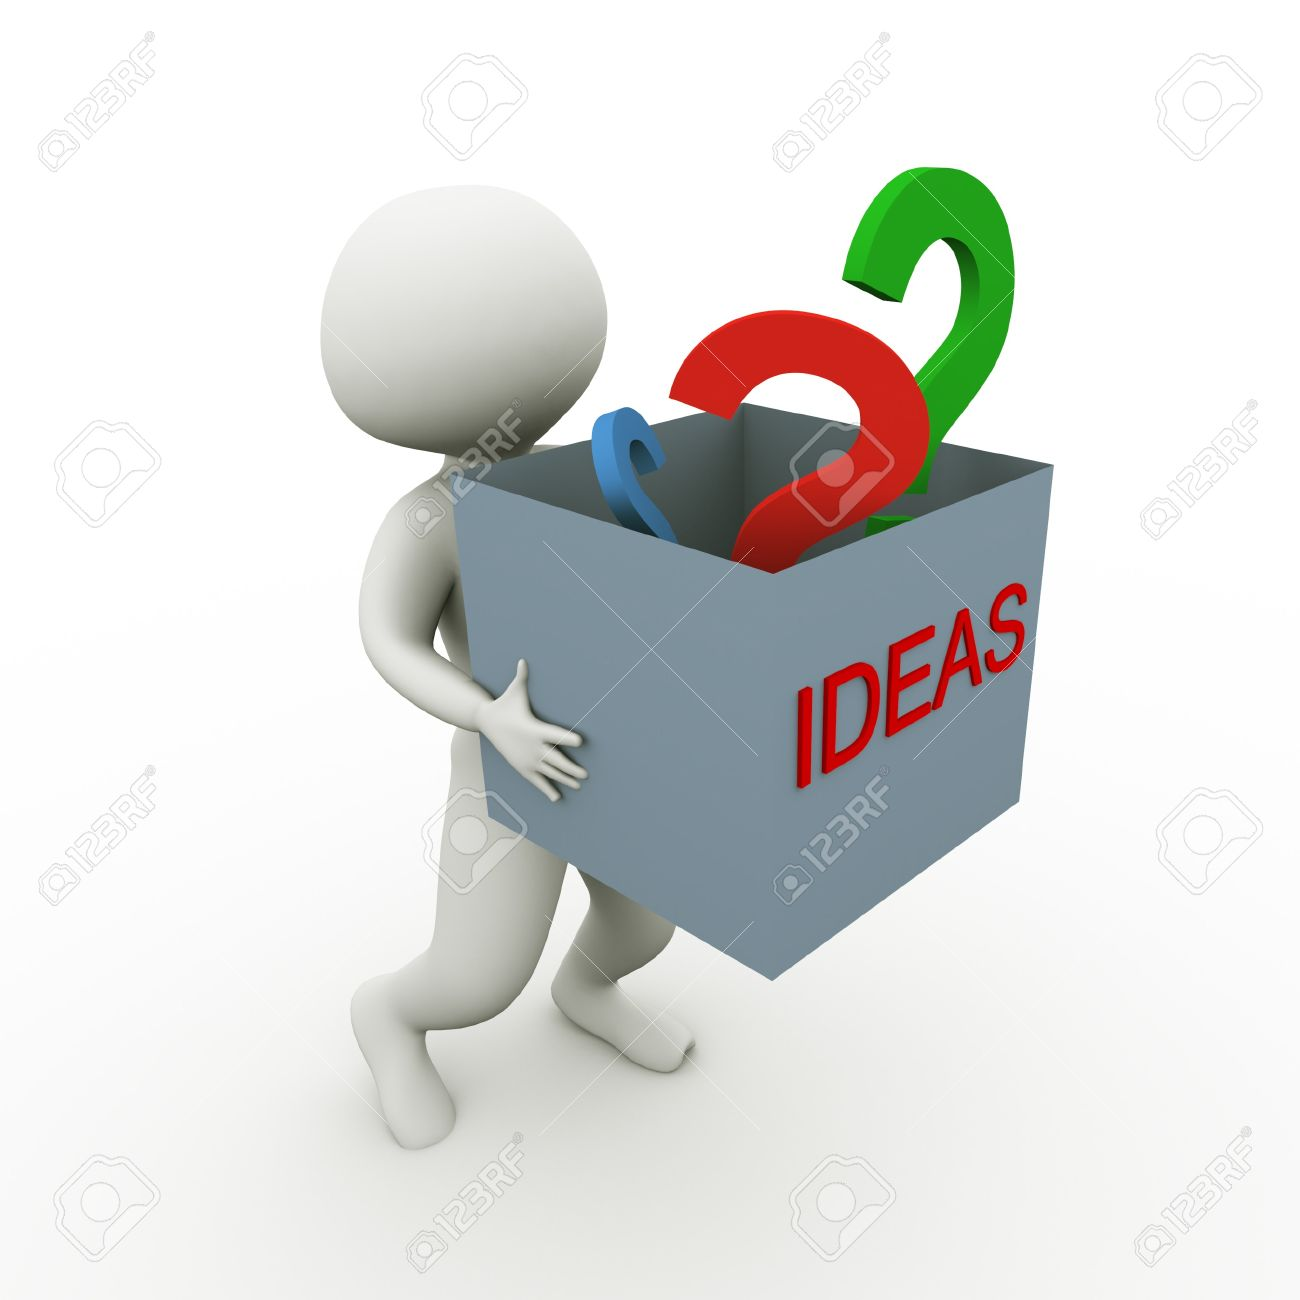 3d man carrying box fill ideas and questions stock photo 3d man carrying box fill ideas and questions stock photo 10326732